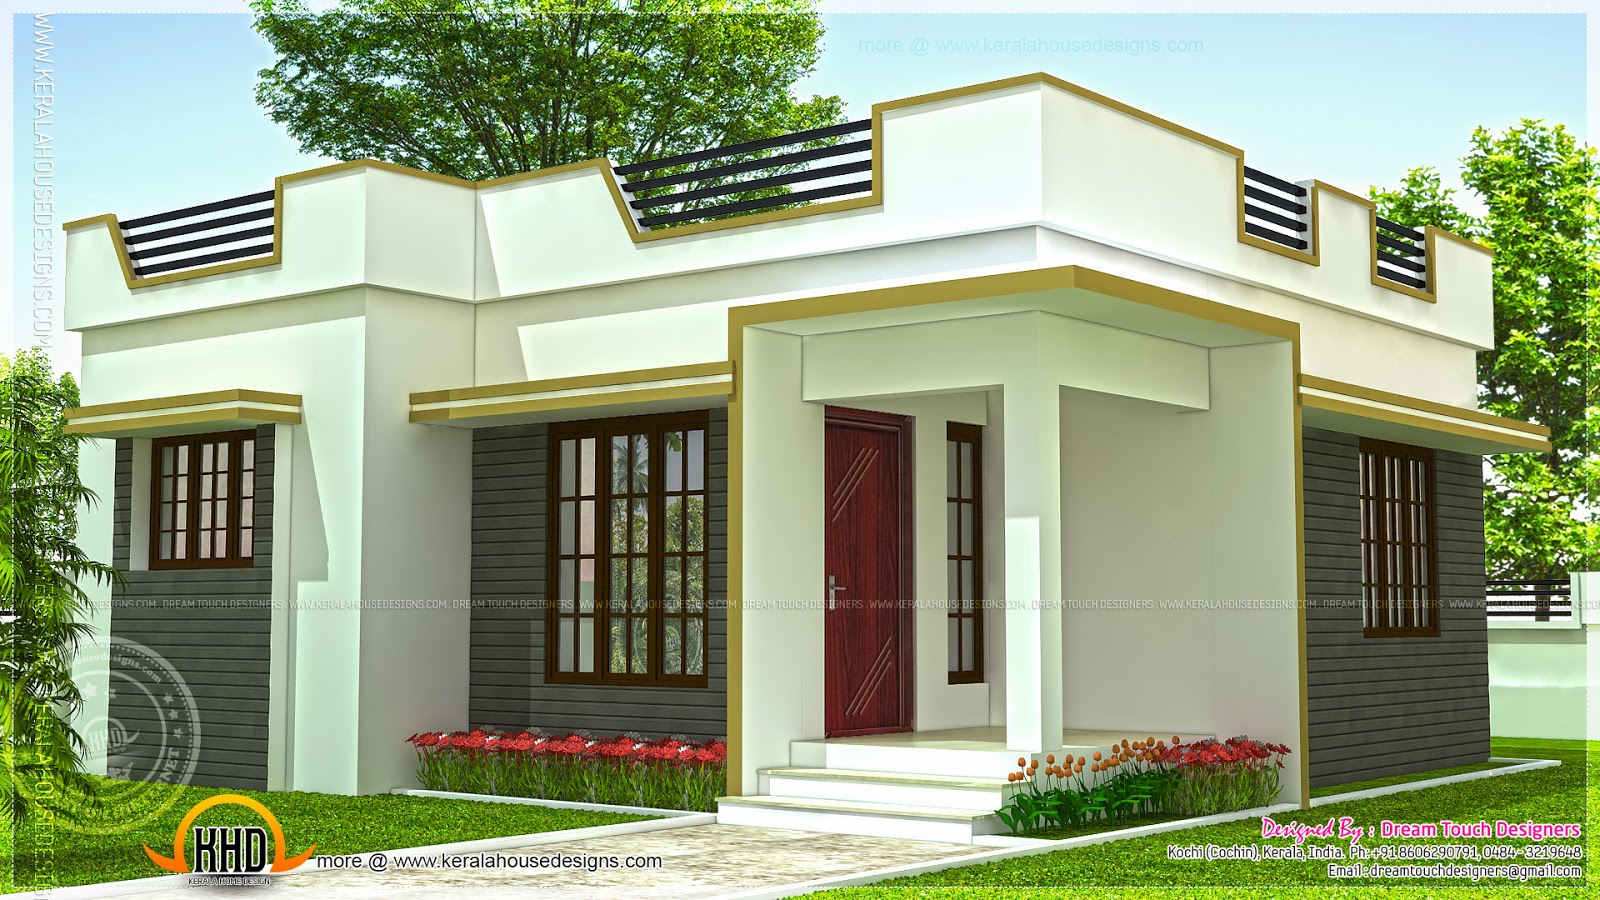 Small house in kerala in 640 square feet kerala home for Small house design